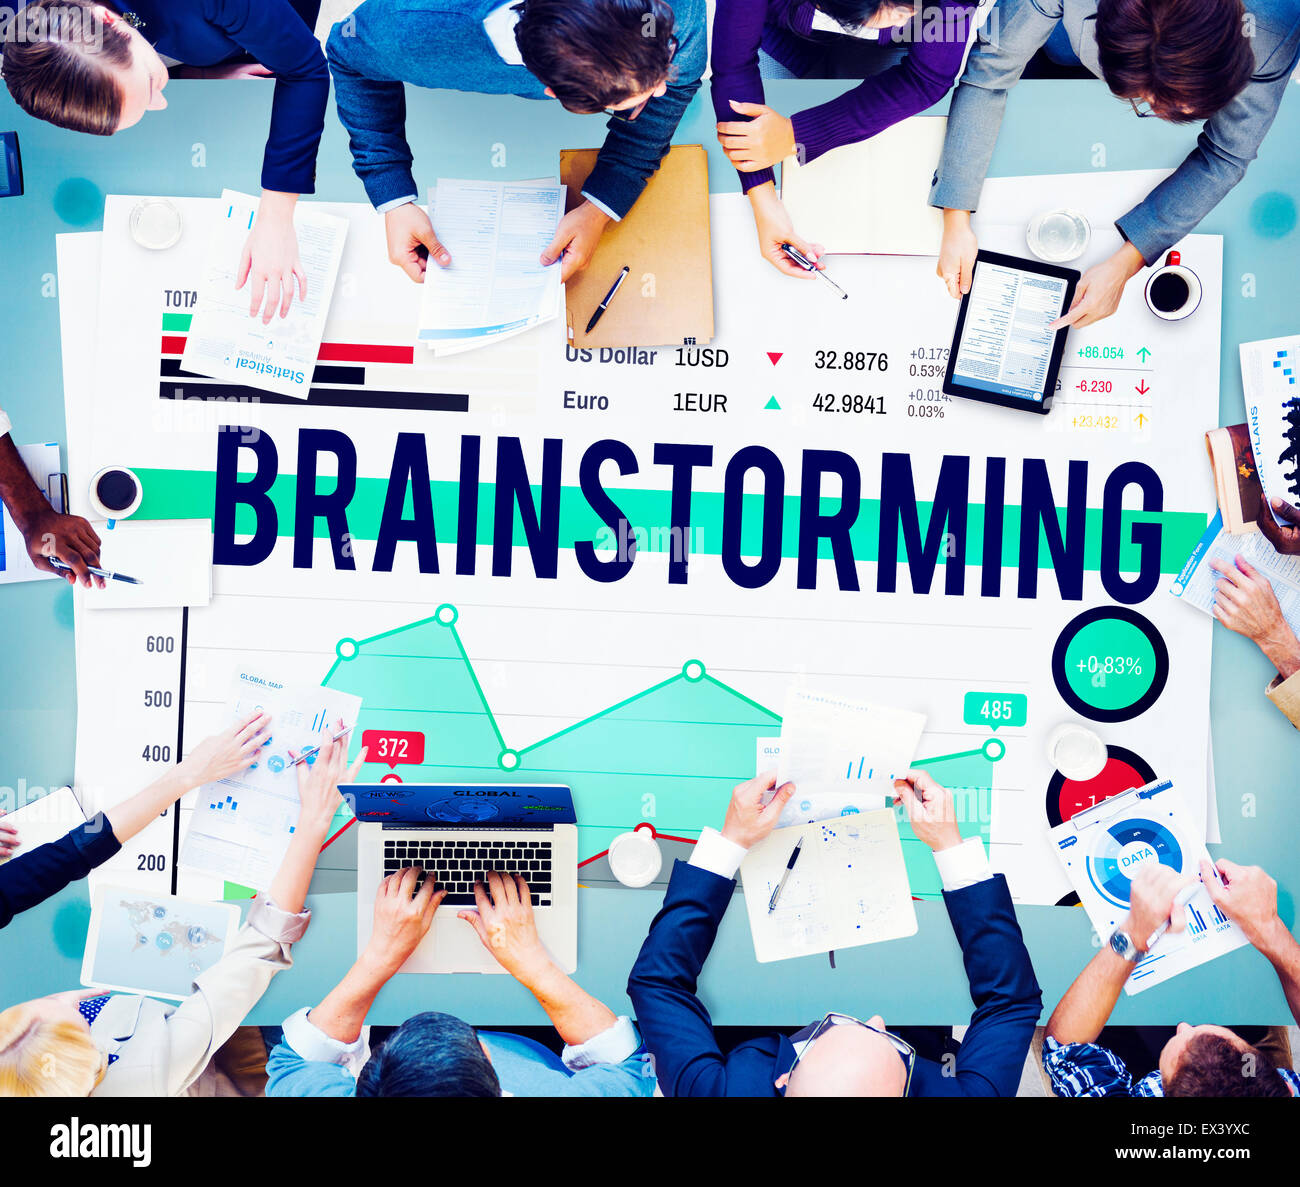 Brainstorming Meeting Planning Plan Business Concept - Stock Image